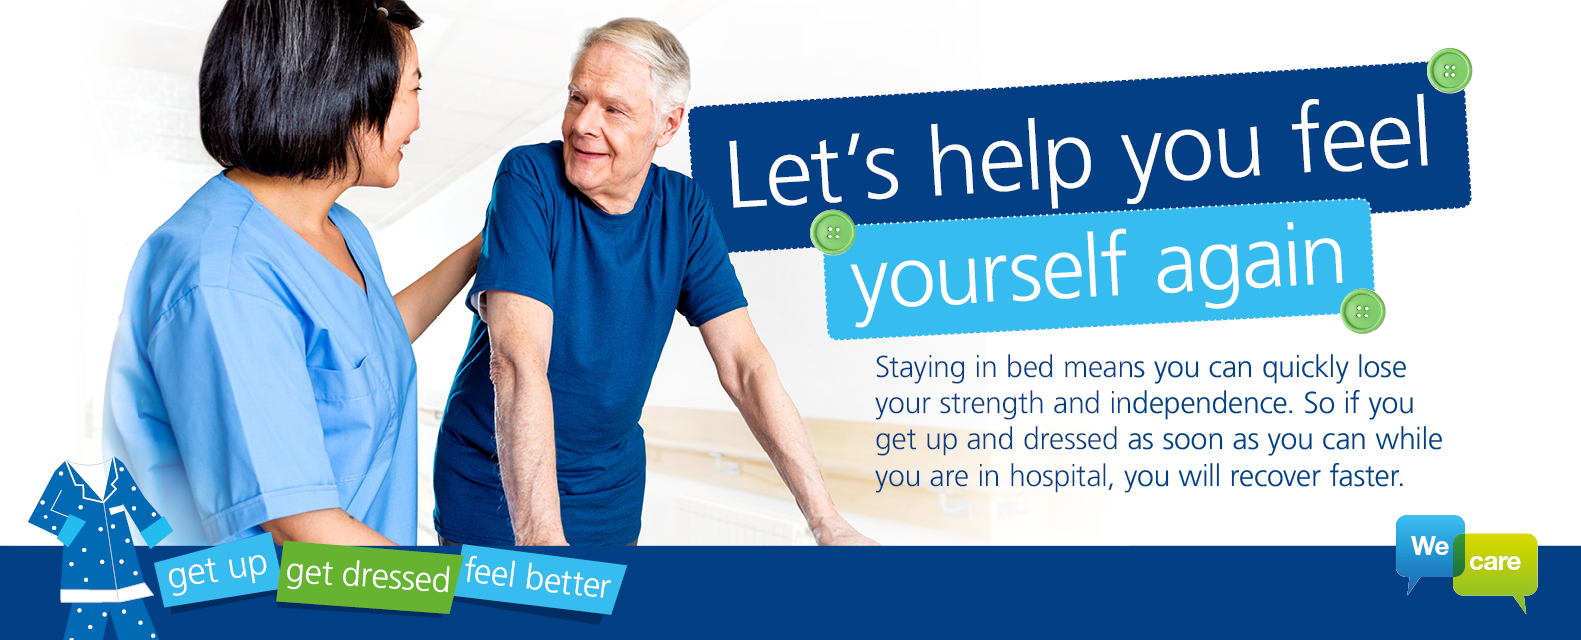 Let's help you feel yourself again banner